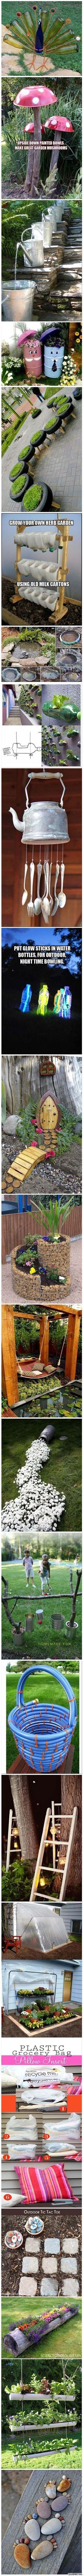 Simple Outdoor Ideas That Are Borderline Genius - Just DWL    The Ultimate Trolling